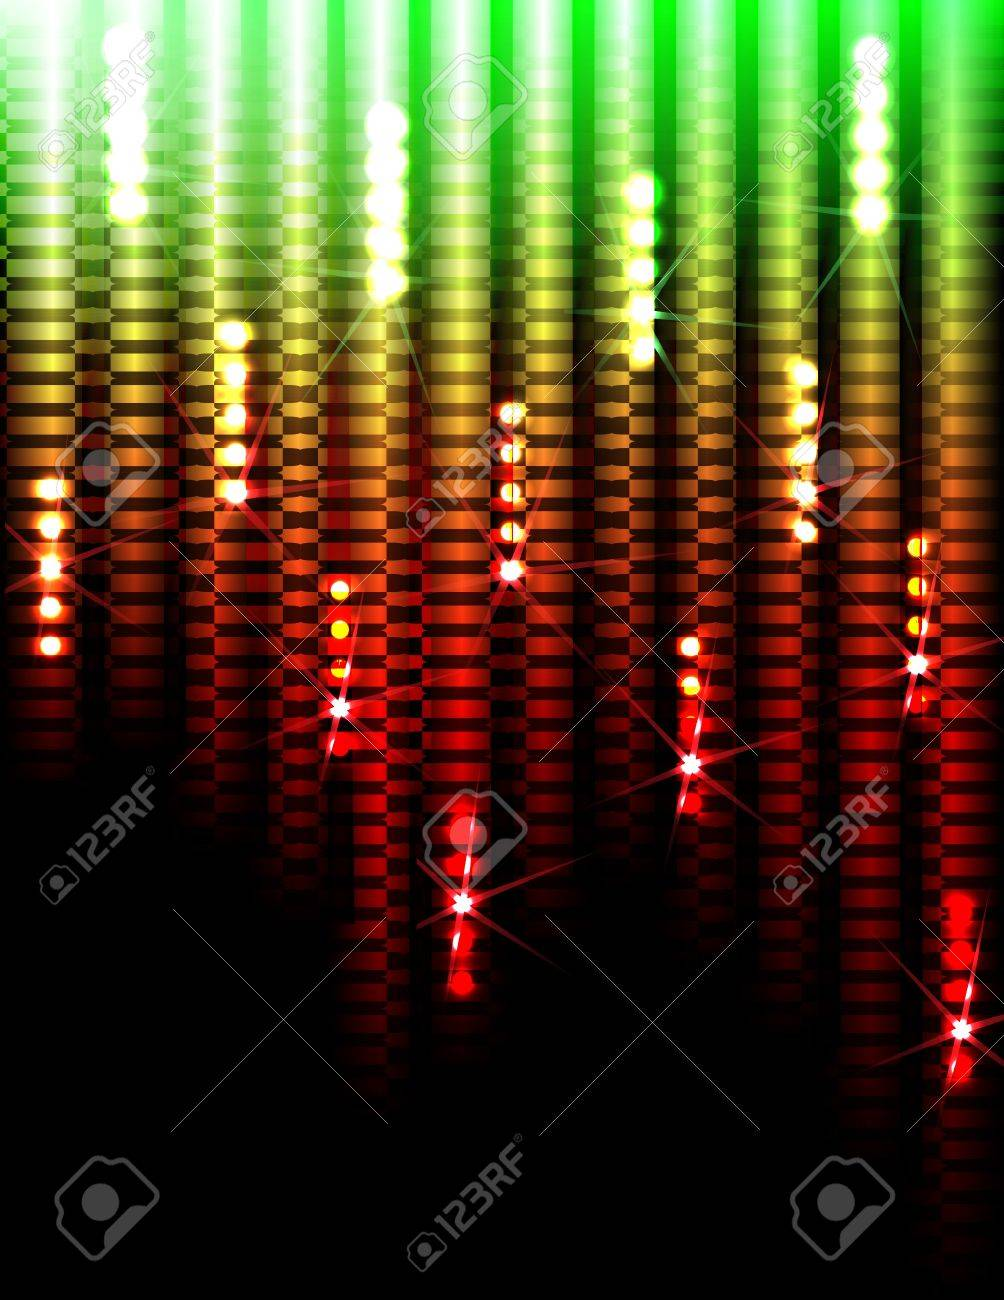 Disco Abstract Colorful Stripes on Black Background Stock Vector - 12209204